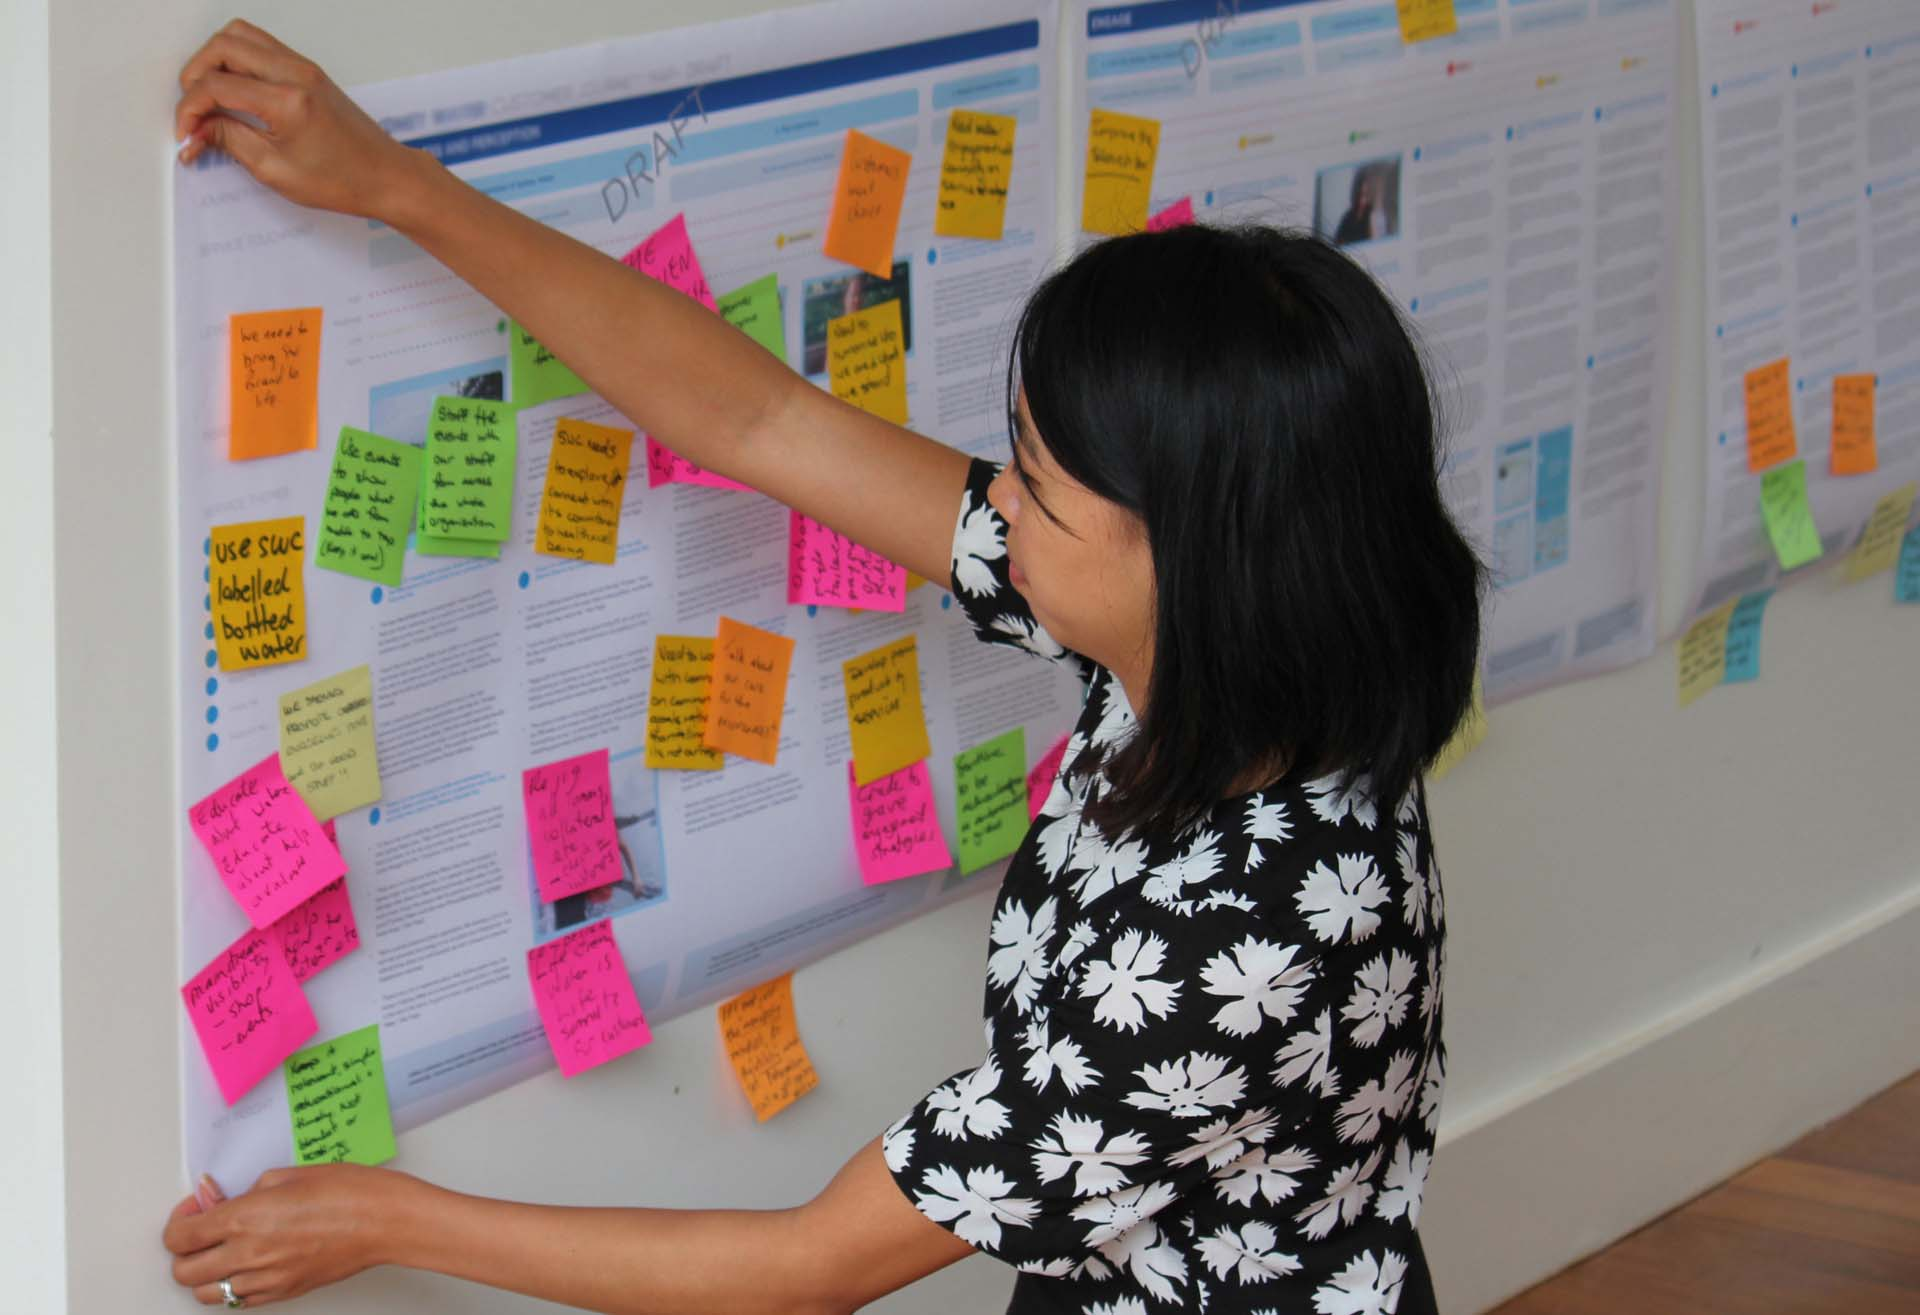 Proto employee pinning up a Service Design strategy